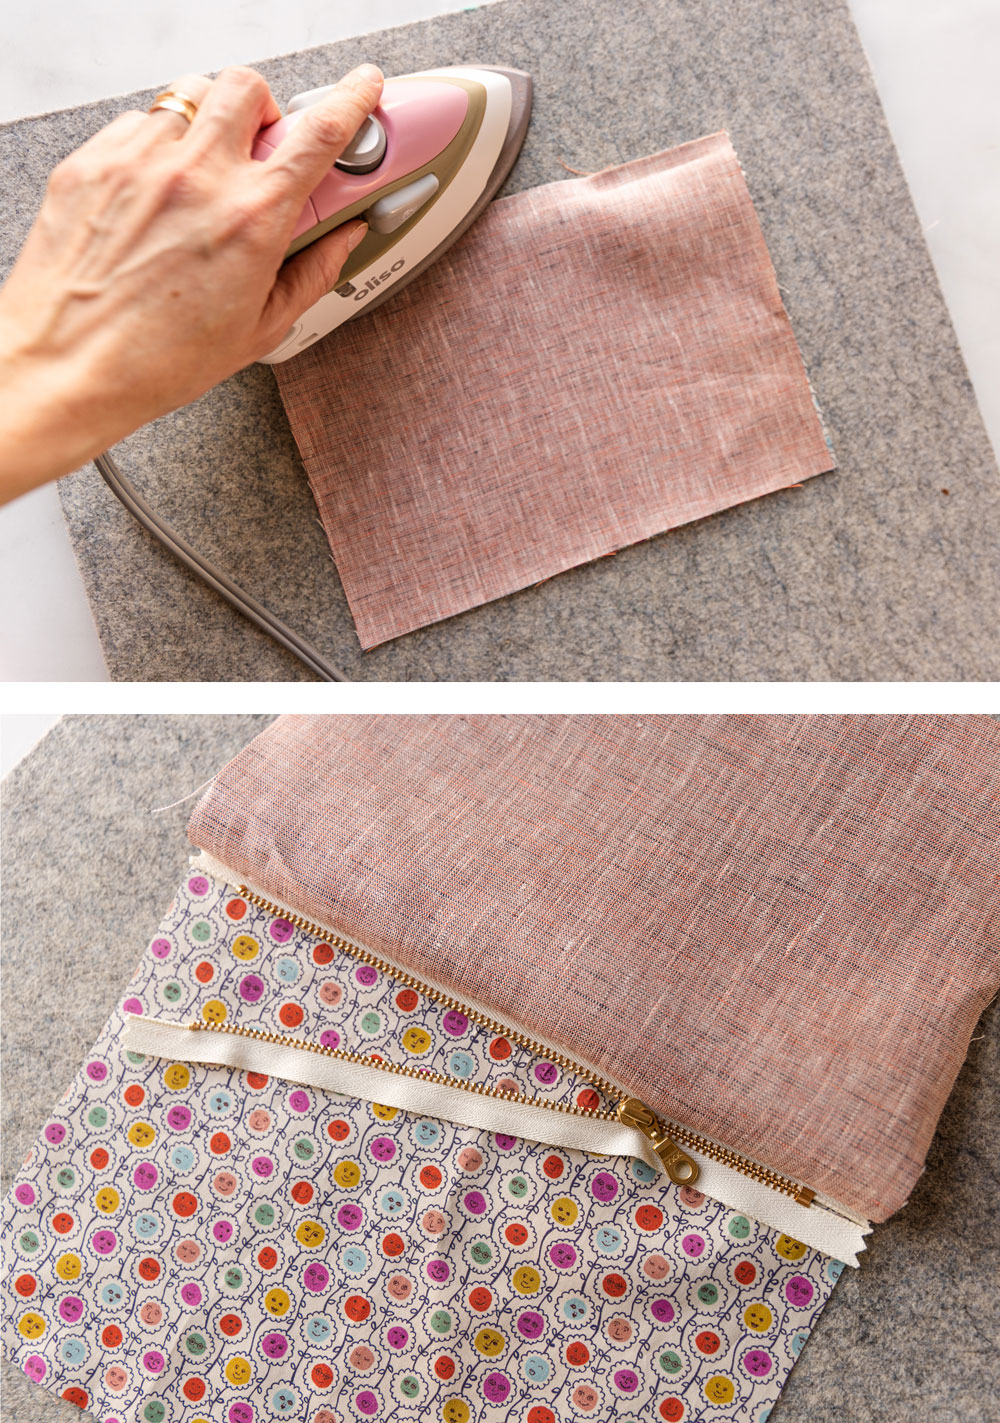 This easy zipper pouch tutorial shows exactly how to sew a simple pouch using scrap fabric and a zipper of any size. suzyquilts.com #zipperpouch #sewingDIY